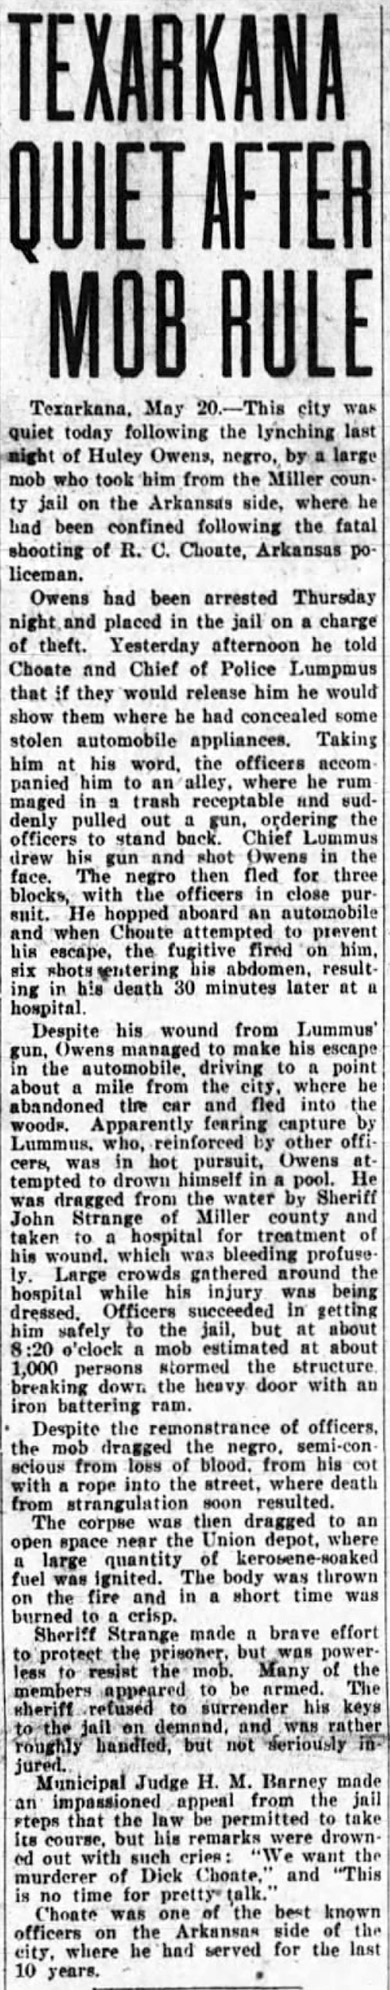 Owen Lynching Article